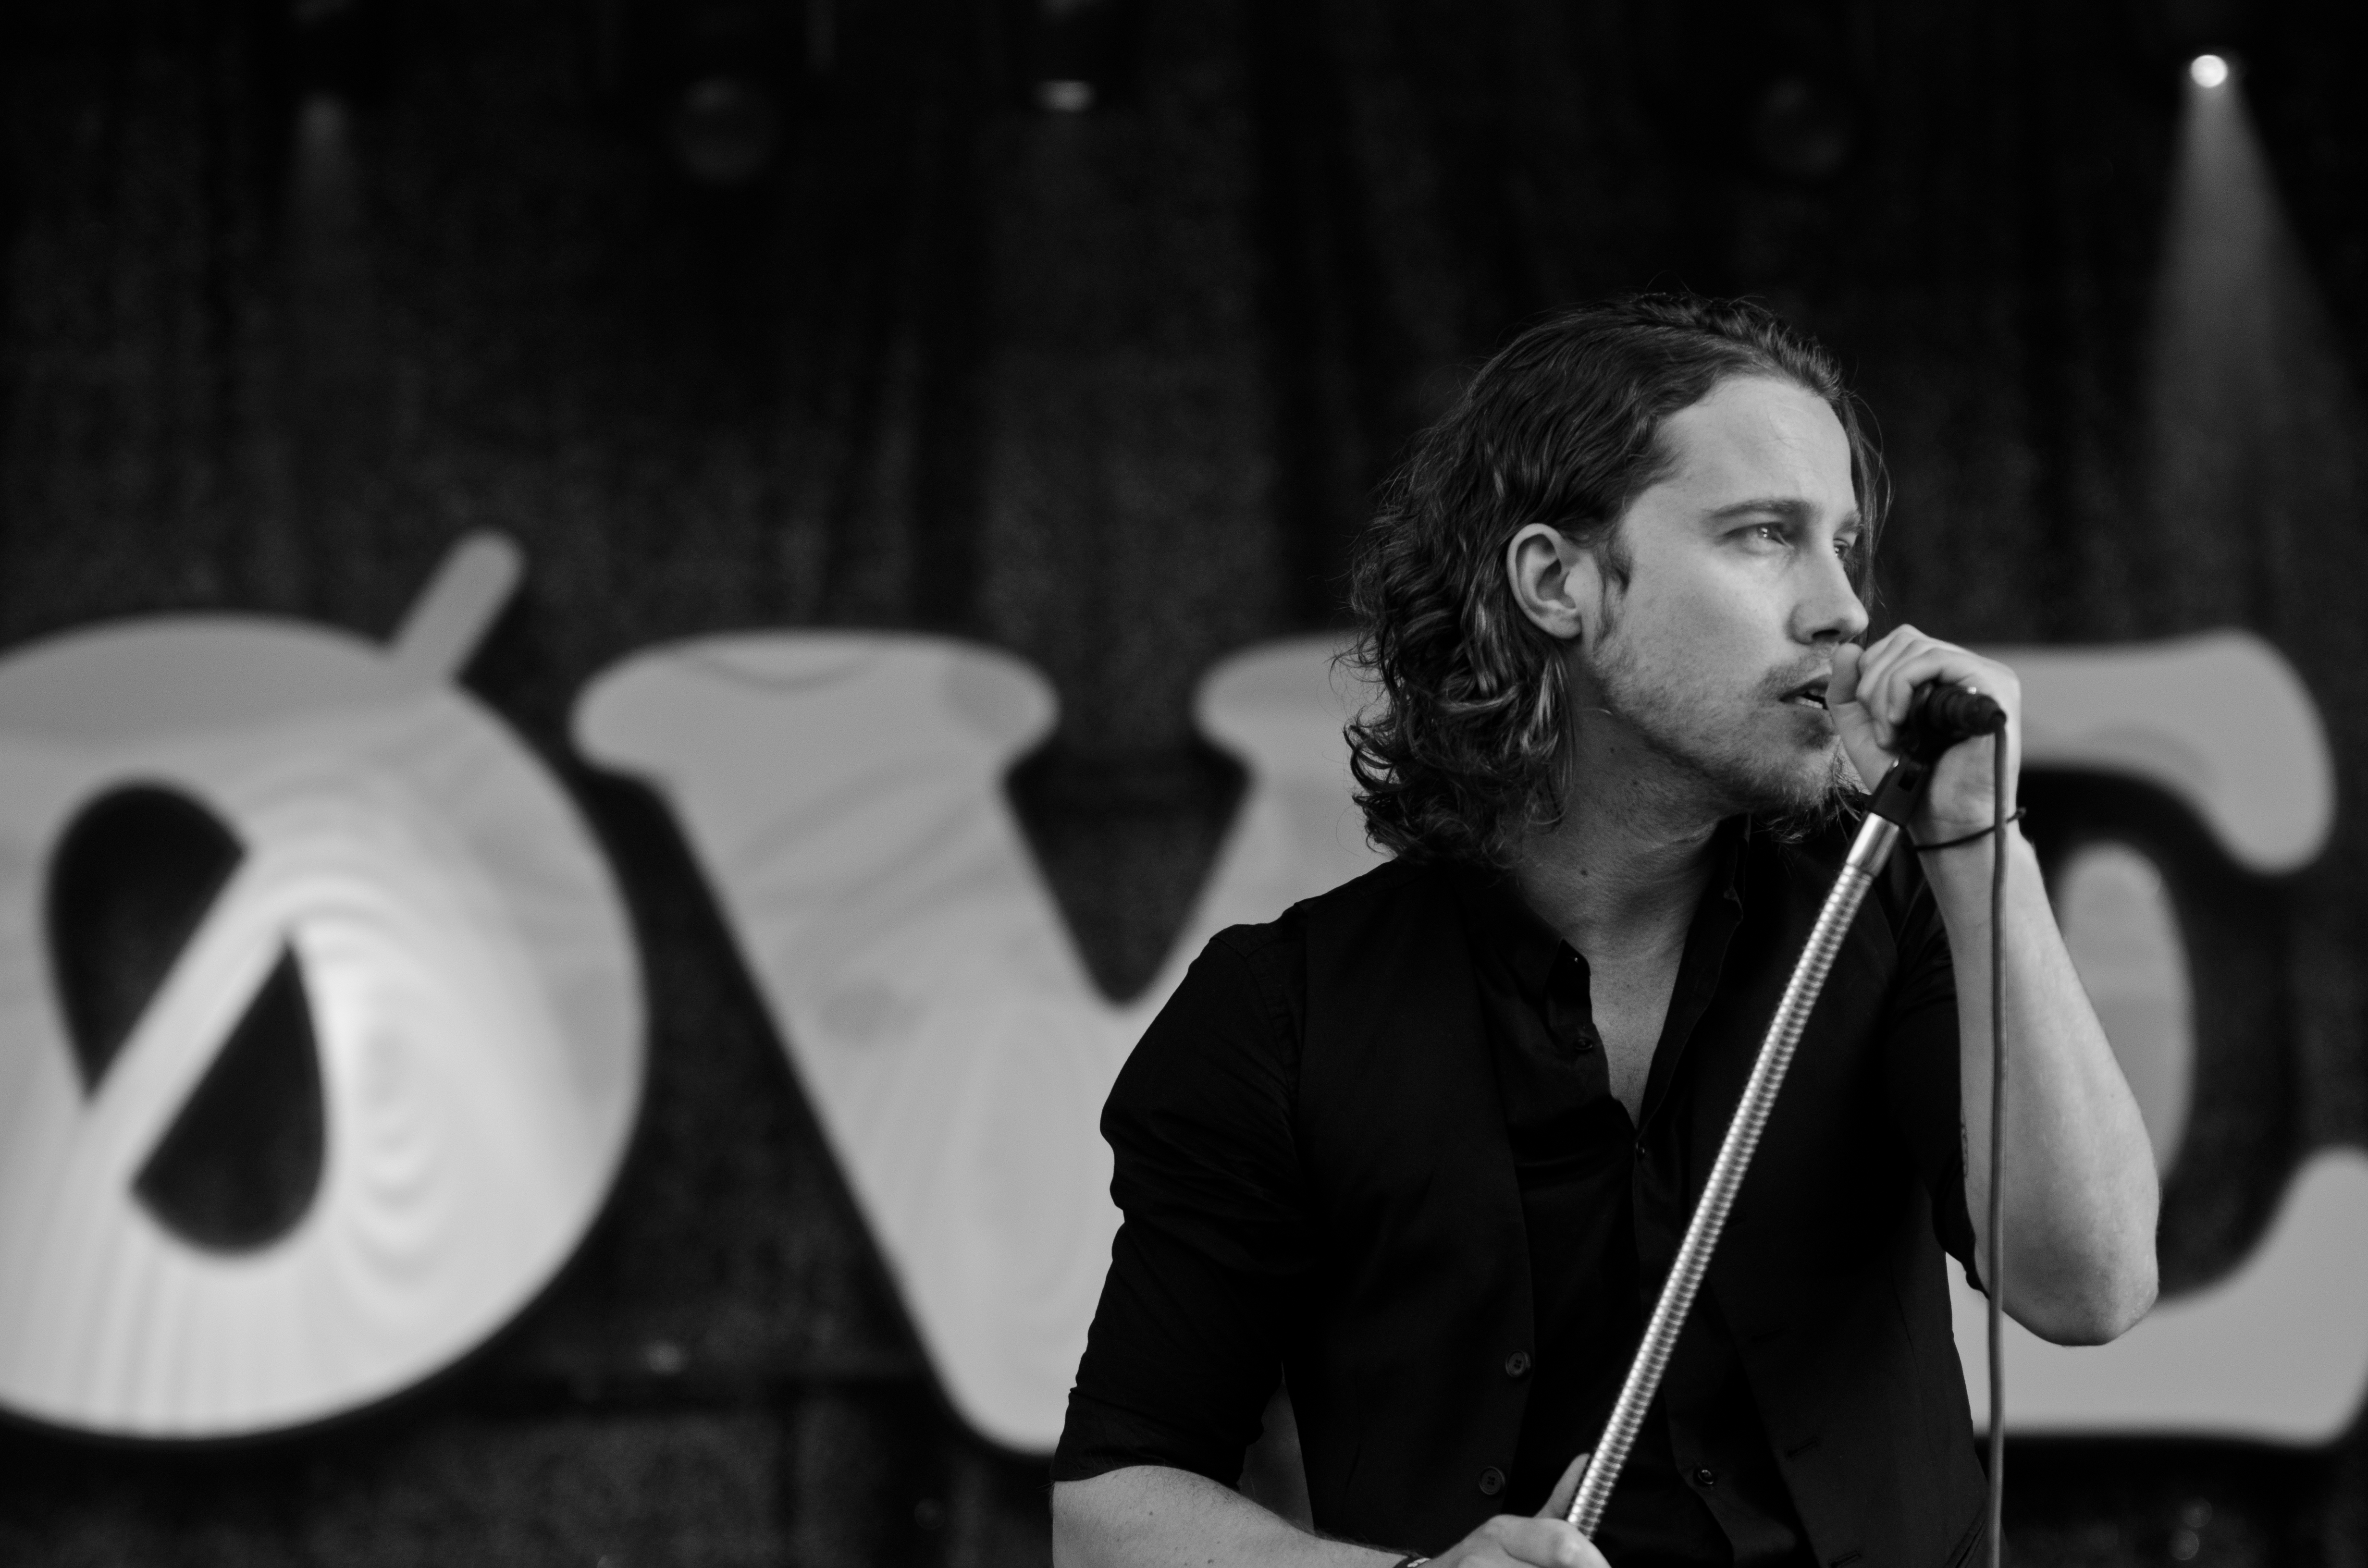 Grayscale Photography of Man Wearing Dress Shirt While Holding Microphone